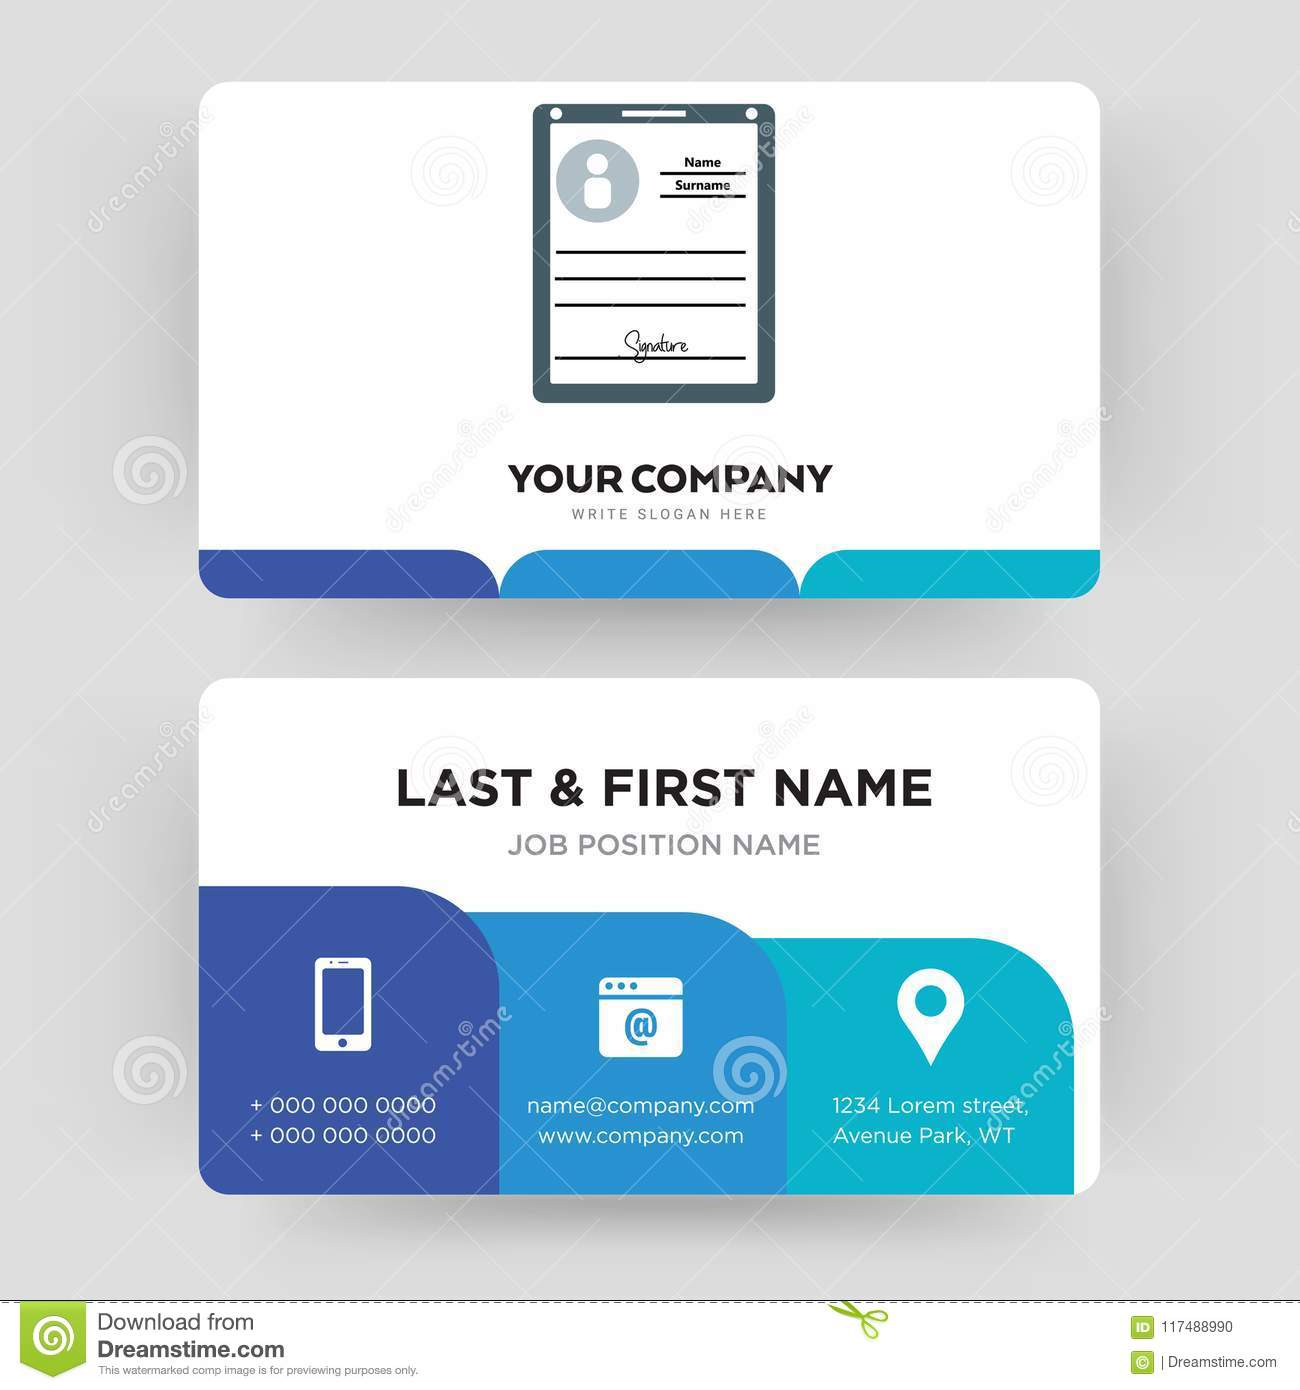 Personal Details Business Card Design Template Visiting For Your Company